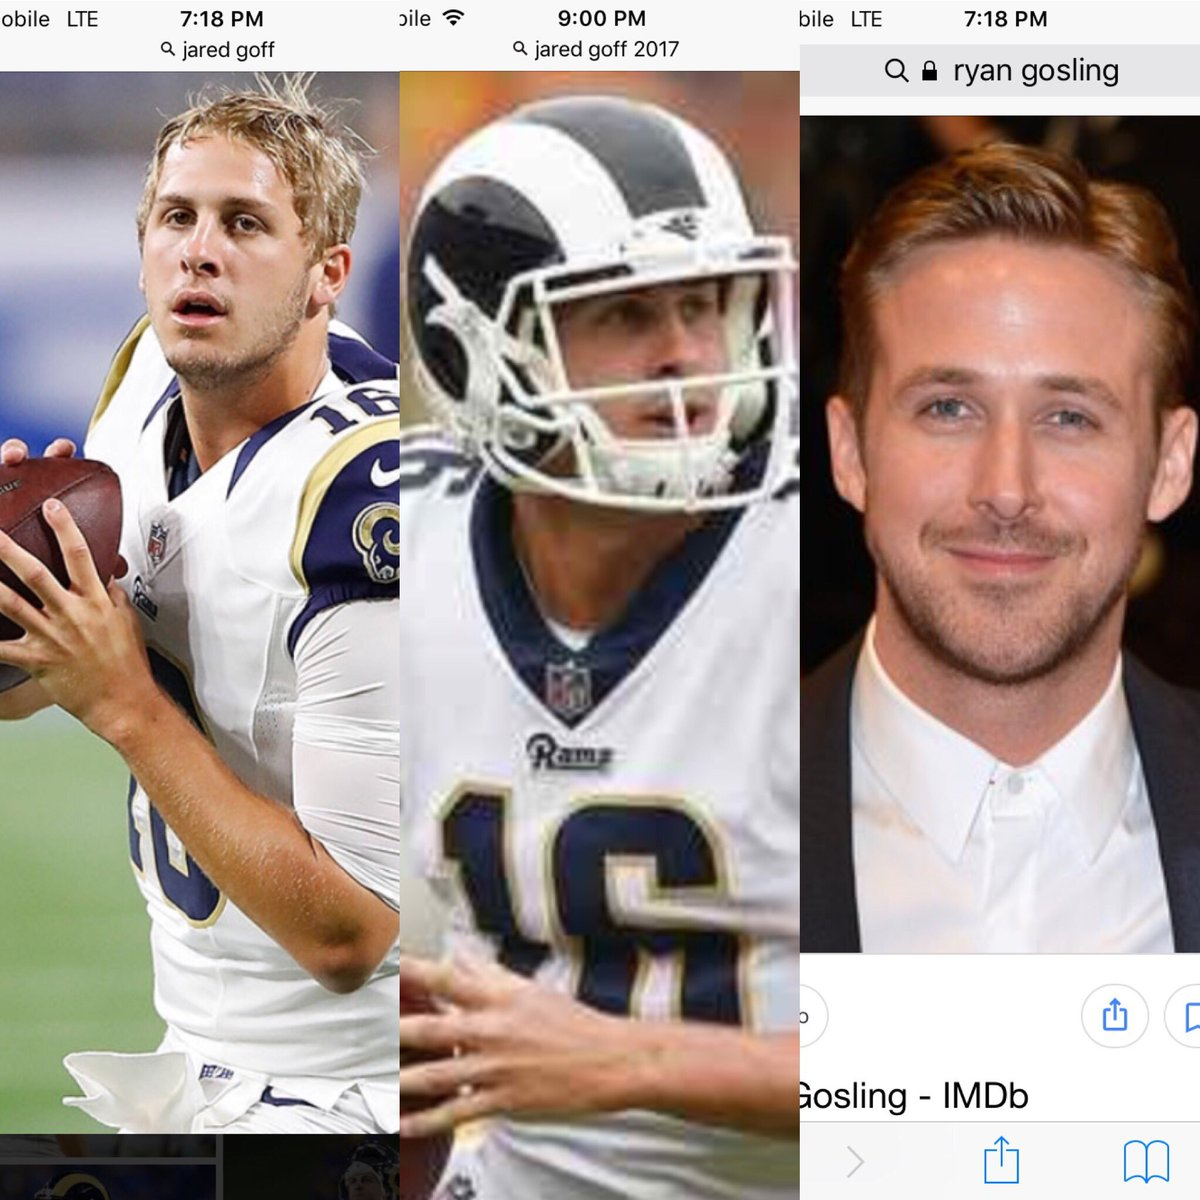 Noah In The Know On Twitter Jared Goff Or Ryan Gosling With A Helmet On ツ